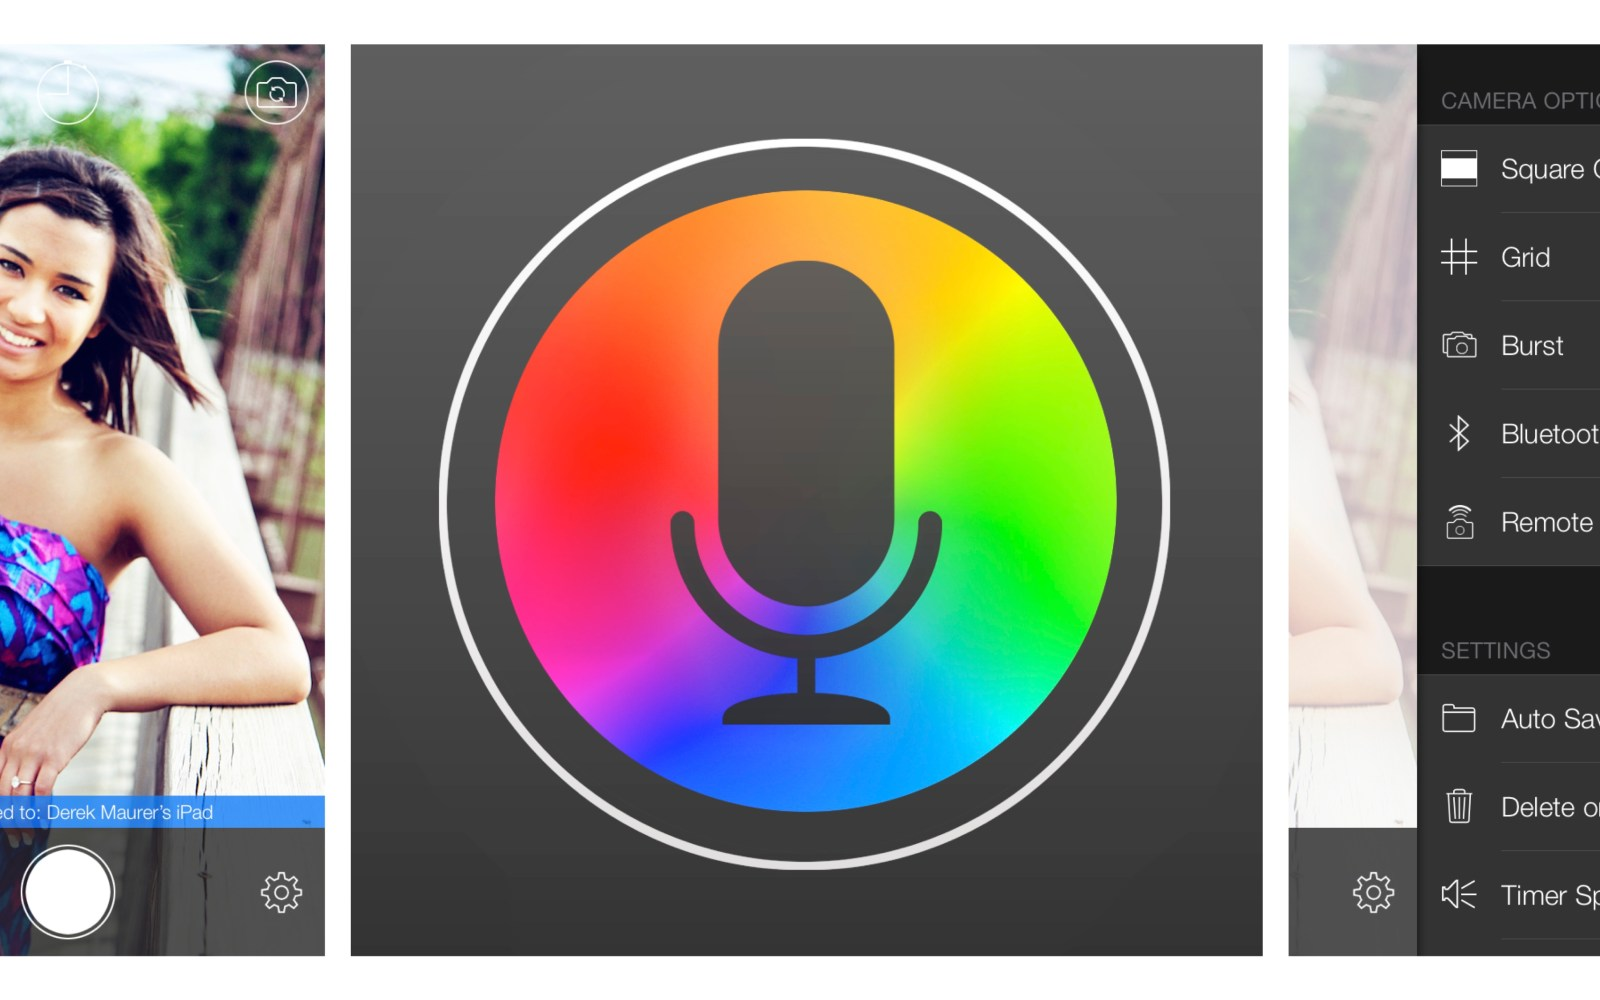 Review: VoiceSnap allows you to control your iOS camera remotely with voice commands [giveaway]